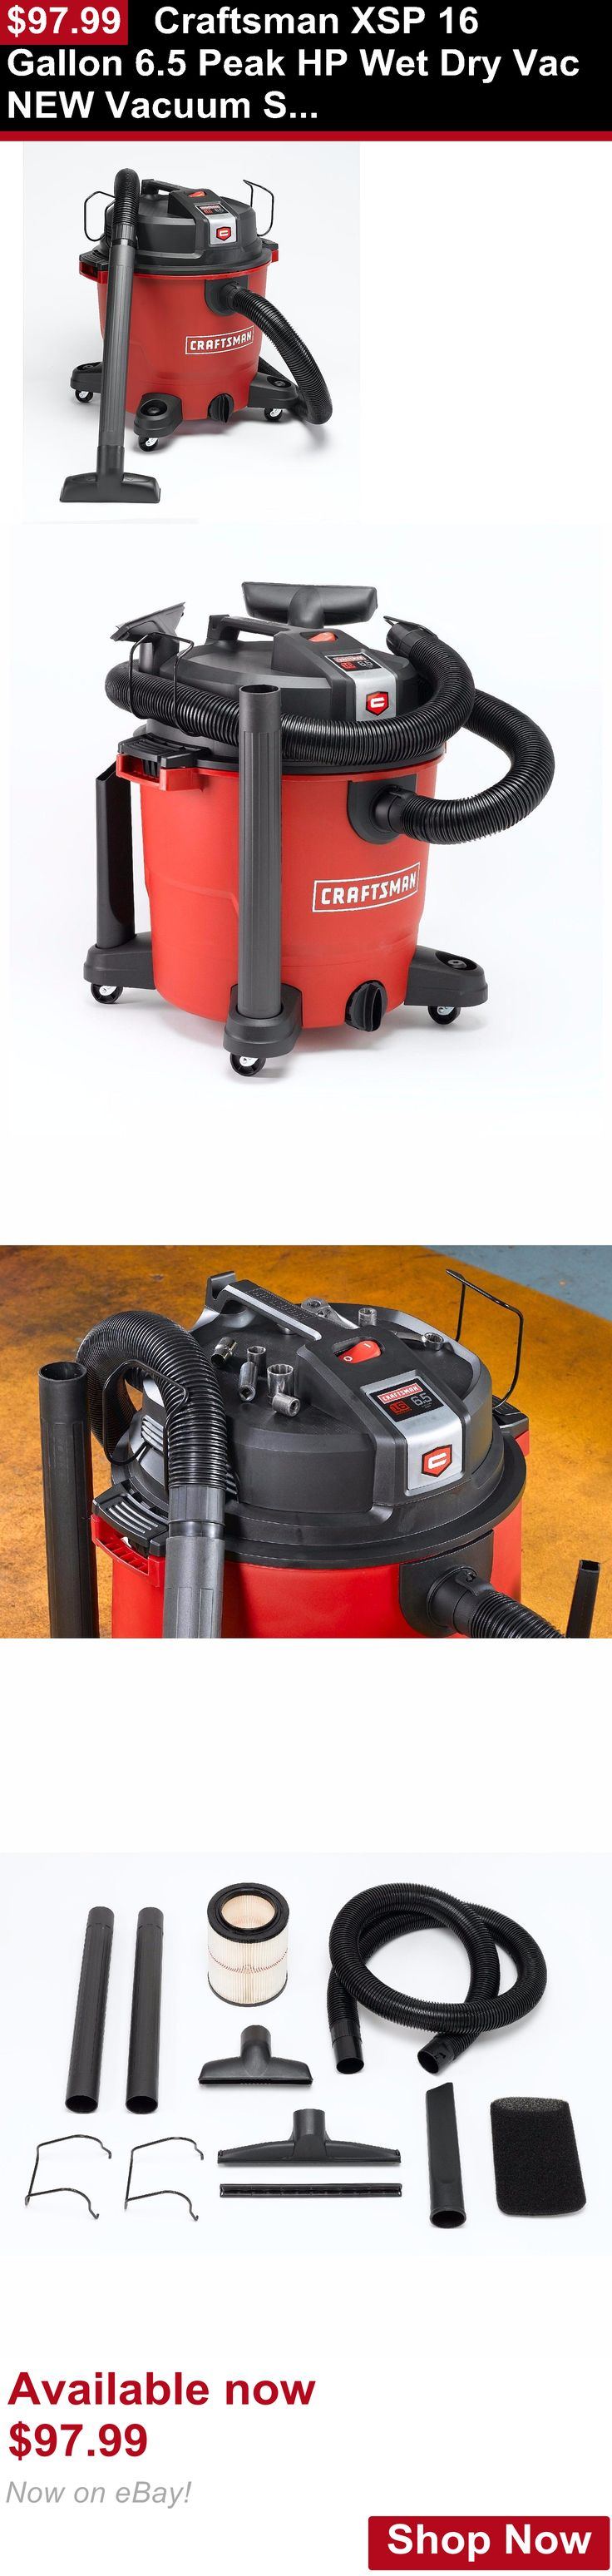 Telescope Eyepieces And Lenses: Craftsman Xsp 16 Gallon 6.5 Peak Hp Wet Dry Vac New Vacuum Shop Cleaner BUY IT NOW ONLY: $97.99